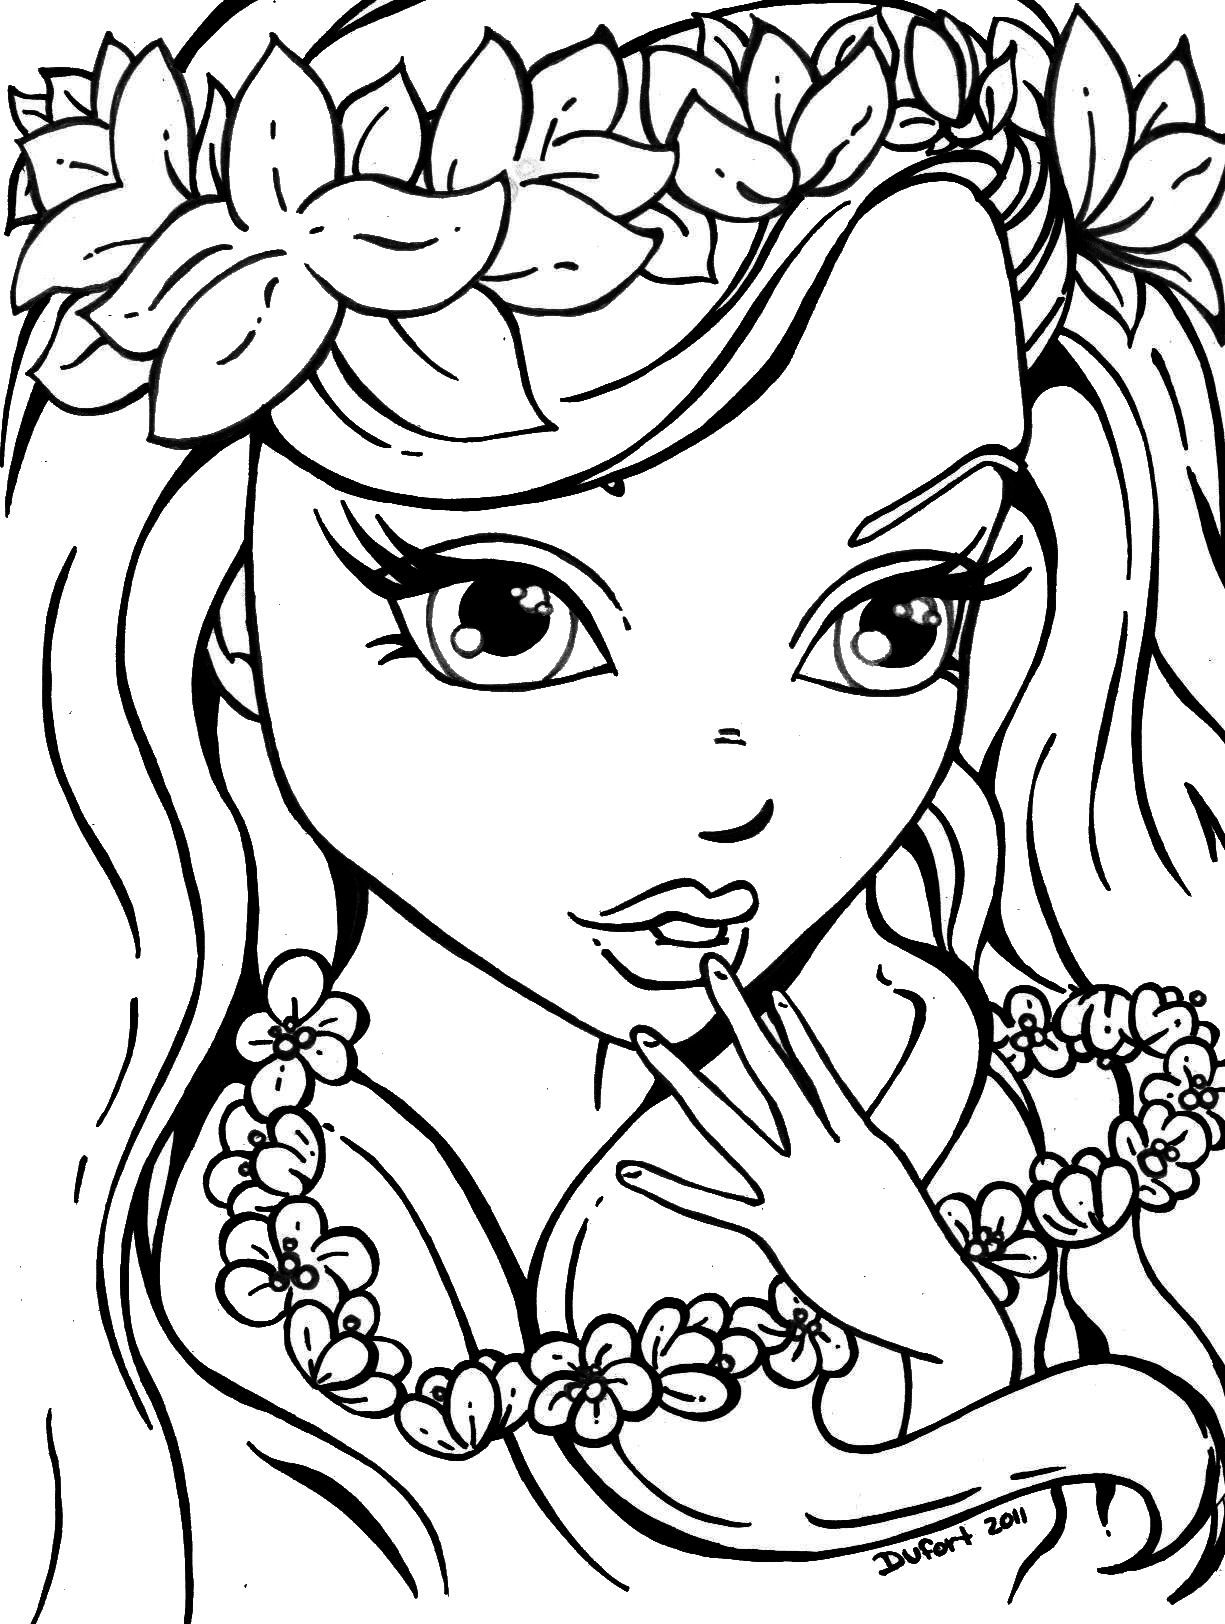 Free Pretty Girl Coloring Page Download Free Clip Art Free Clip Art On Clipart Library